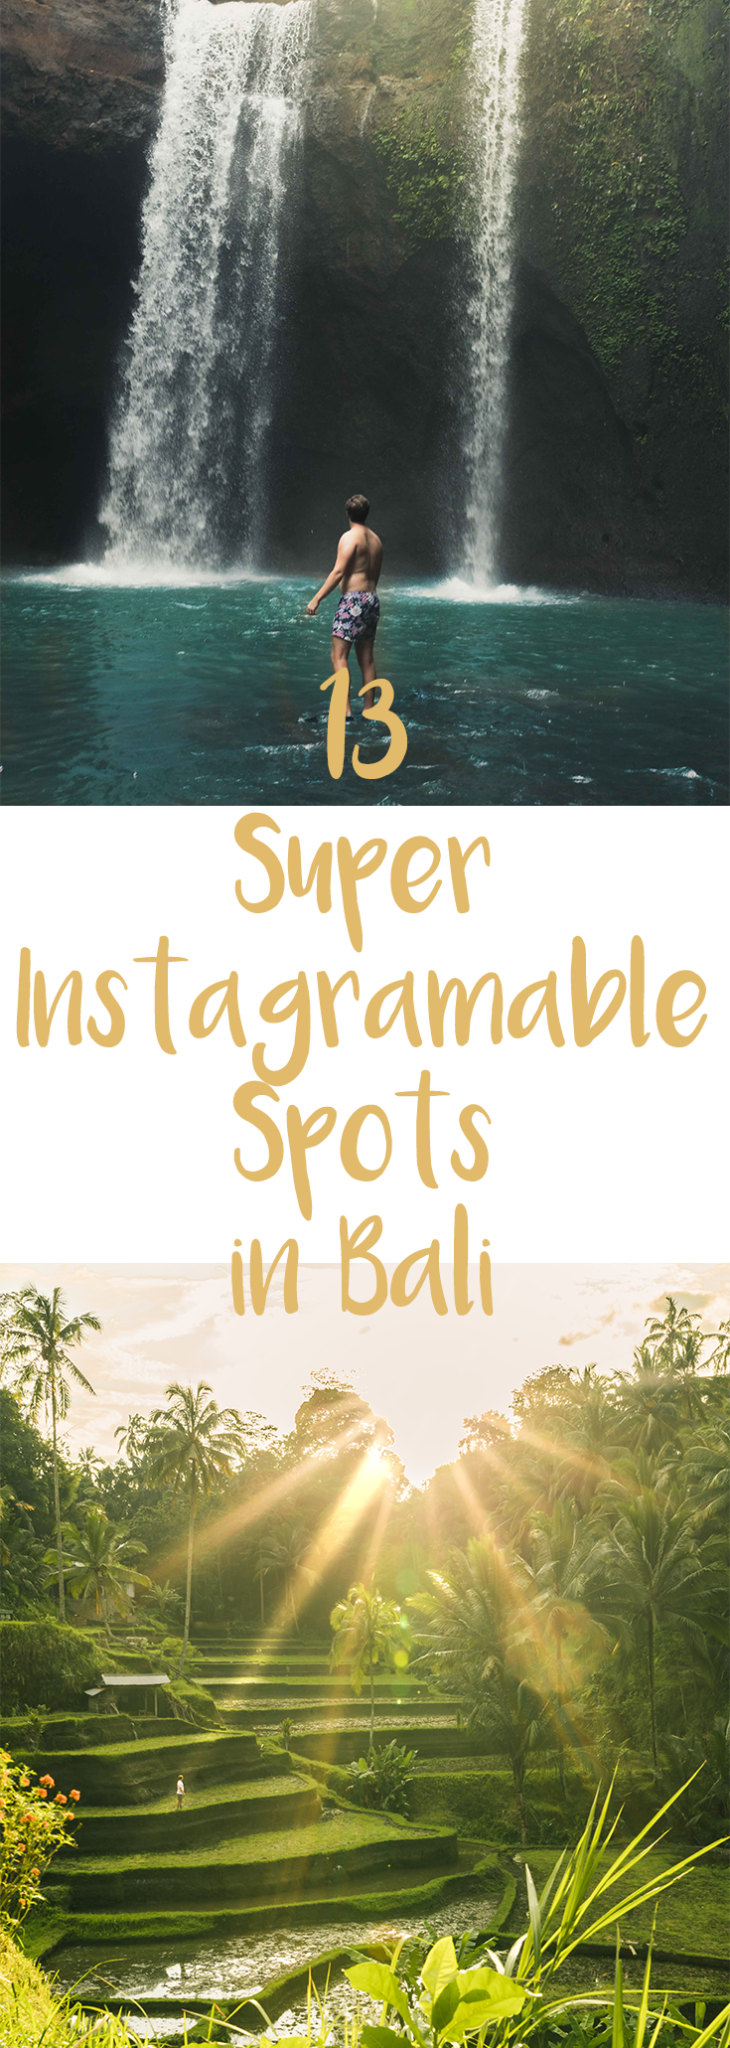 Bali is one of the most beautiful destinations in the world. From the roaring volcanoes to the beautiful beaches and everywhere in between these are the most instagramable locations in Bali. via @passports2life